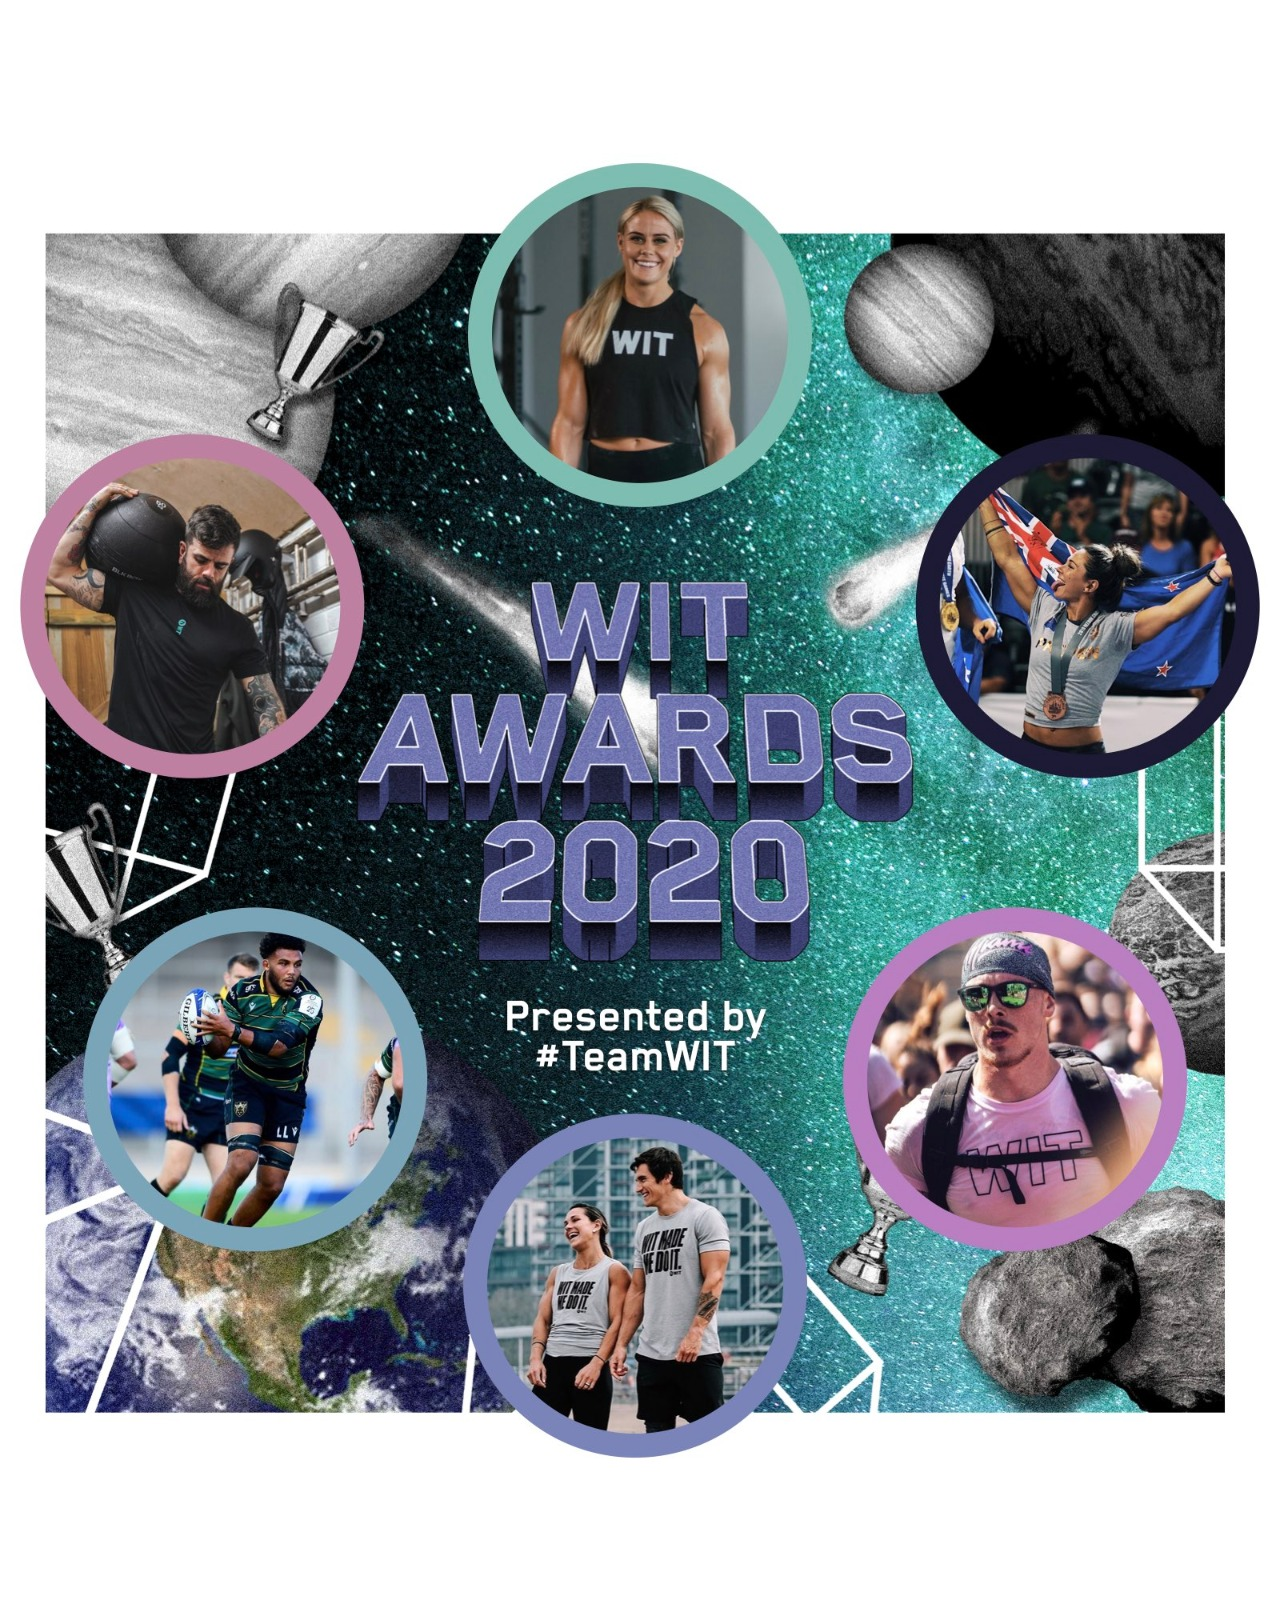 The WIT Awards are Back!